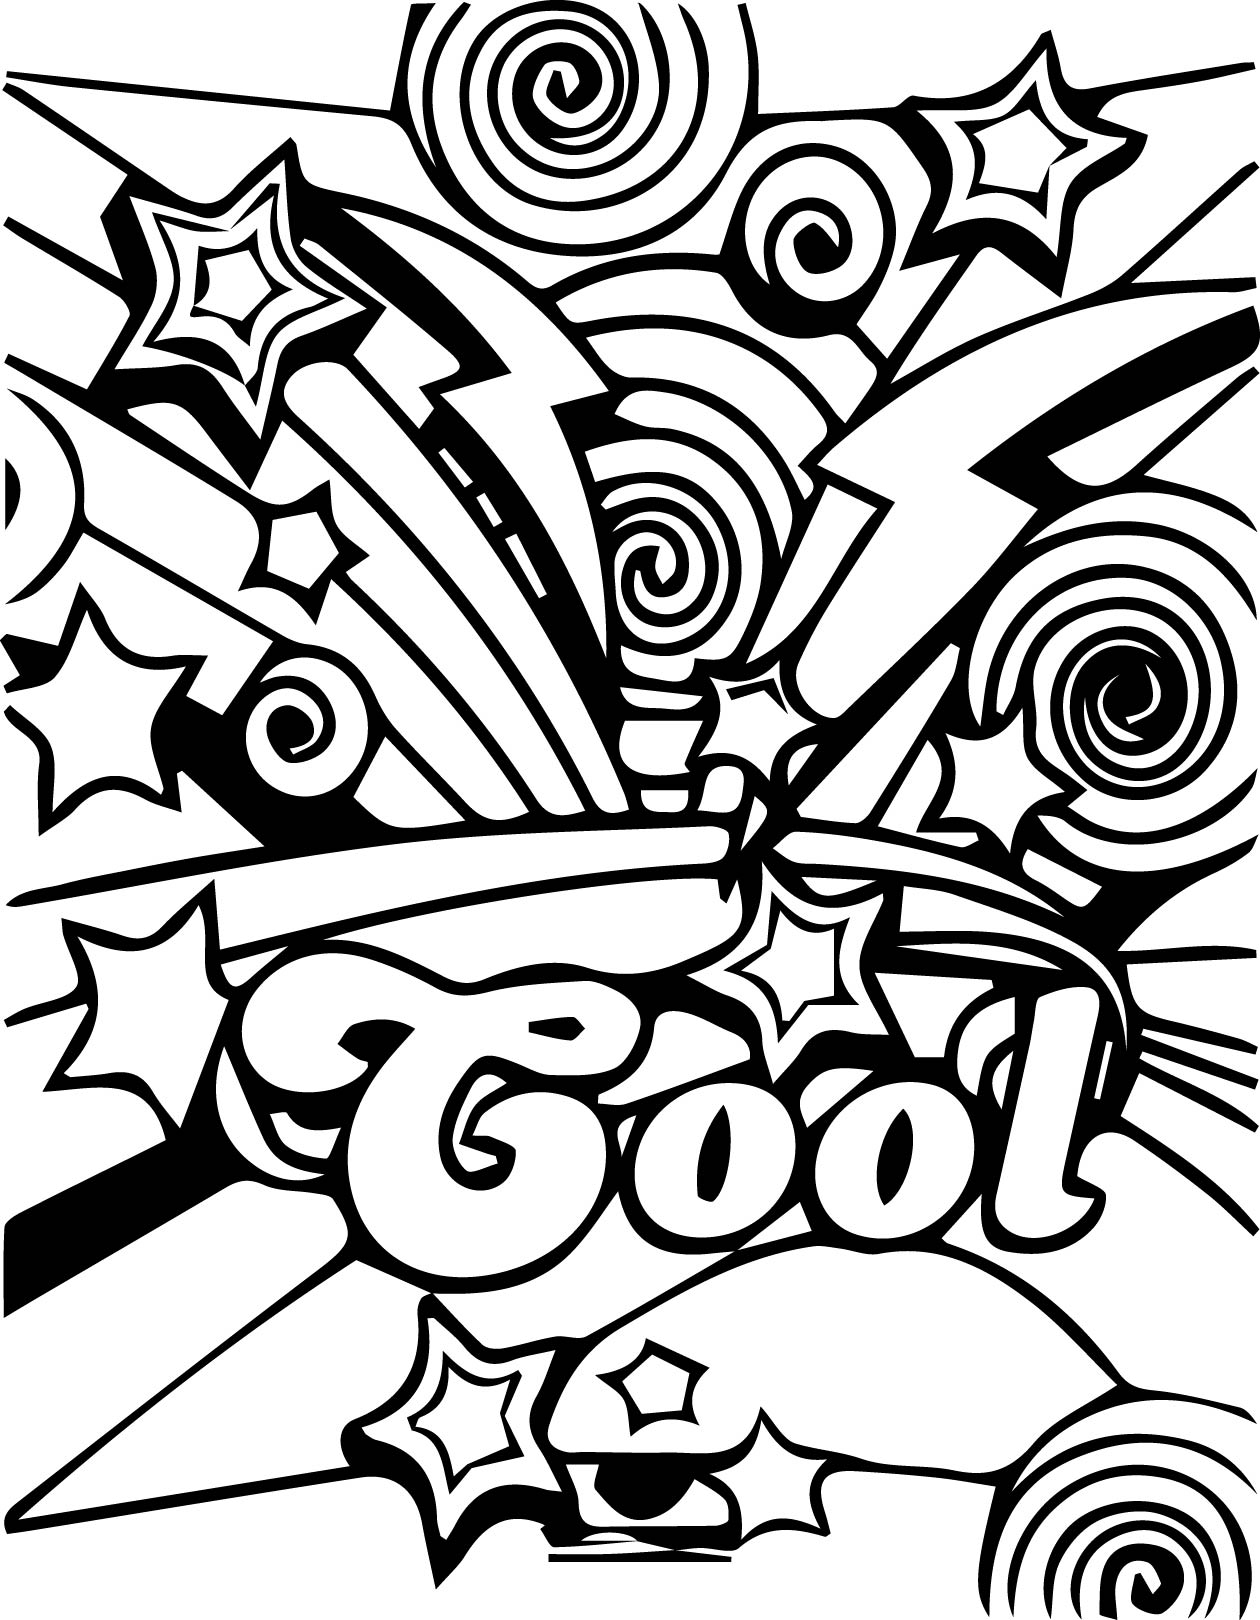 Free Full Size Coloring Pages At Getcolorings